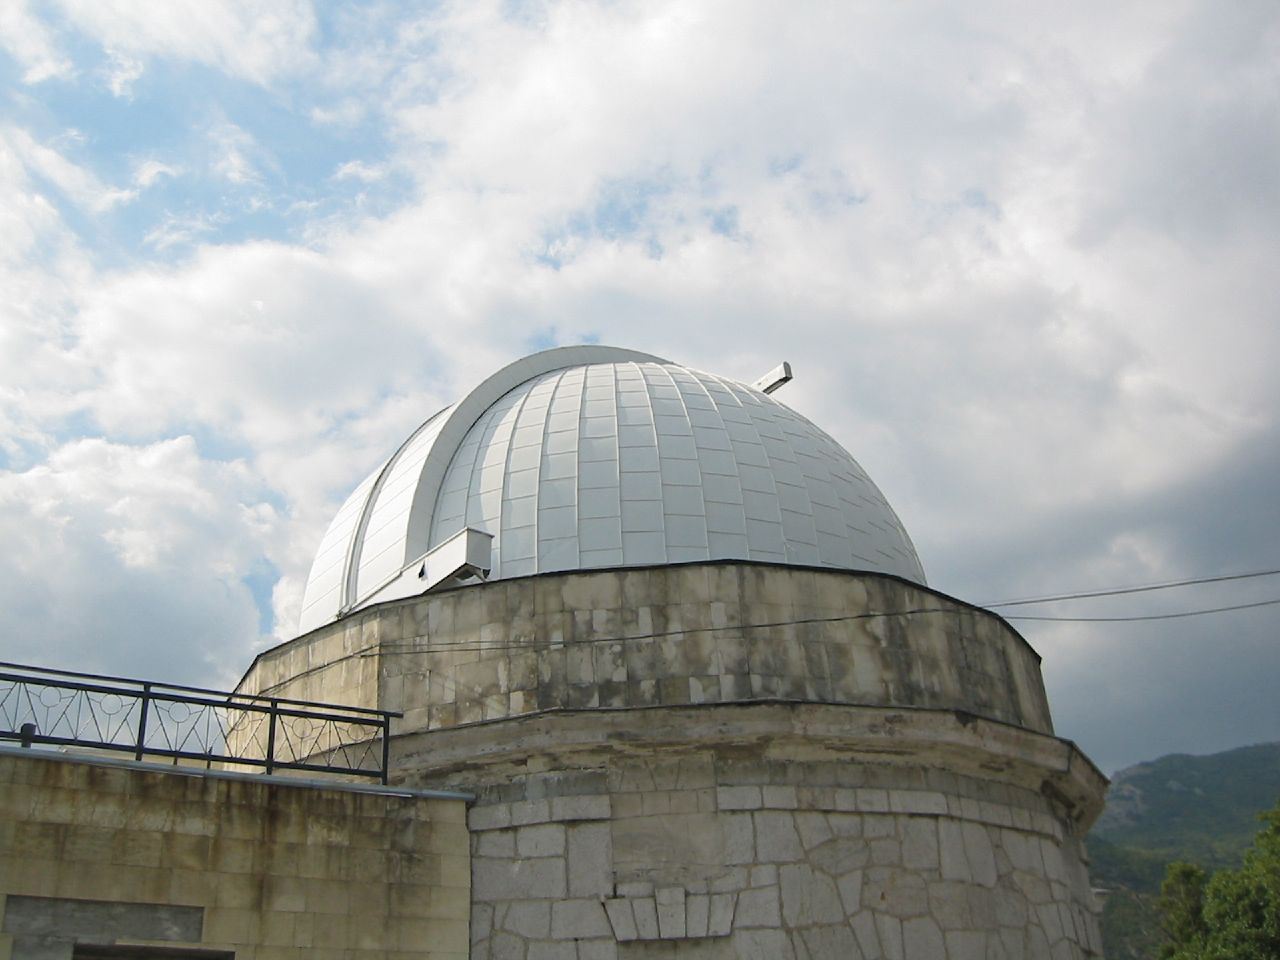 astronomy observatory with telescope - photo #24